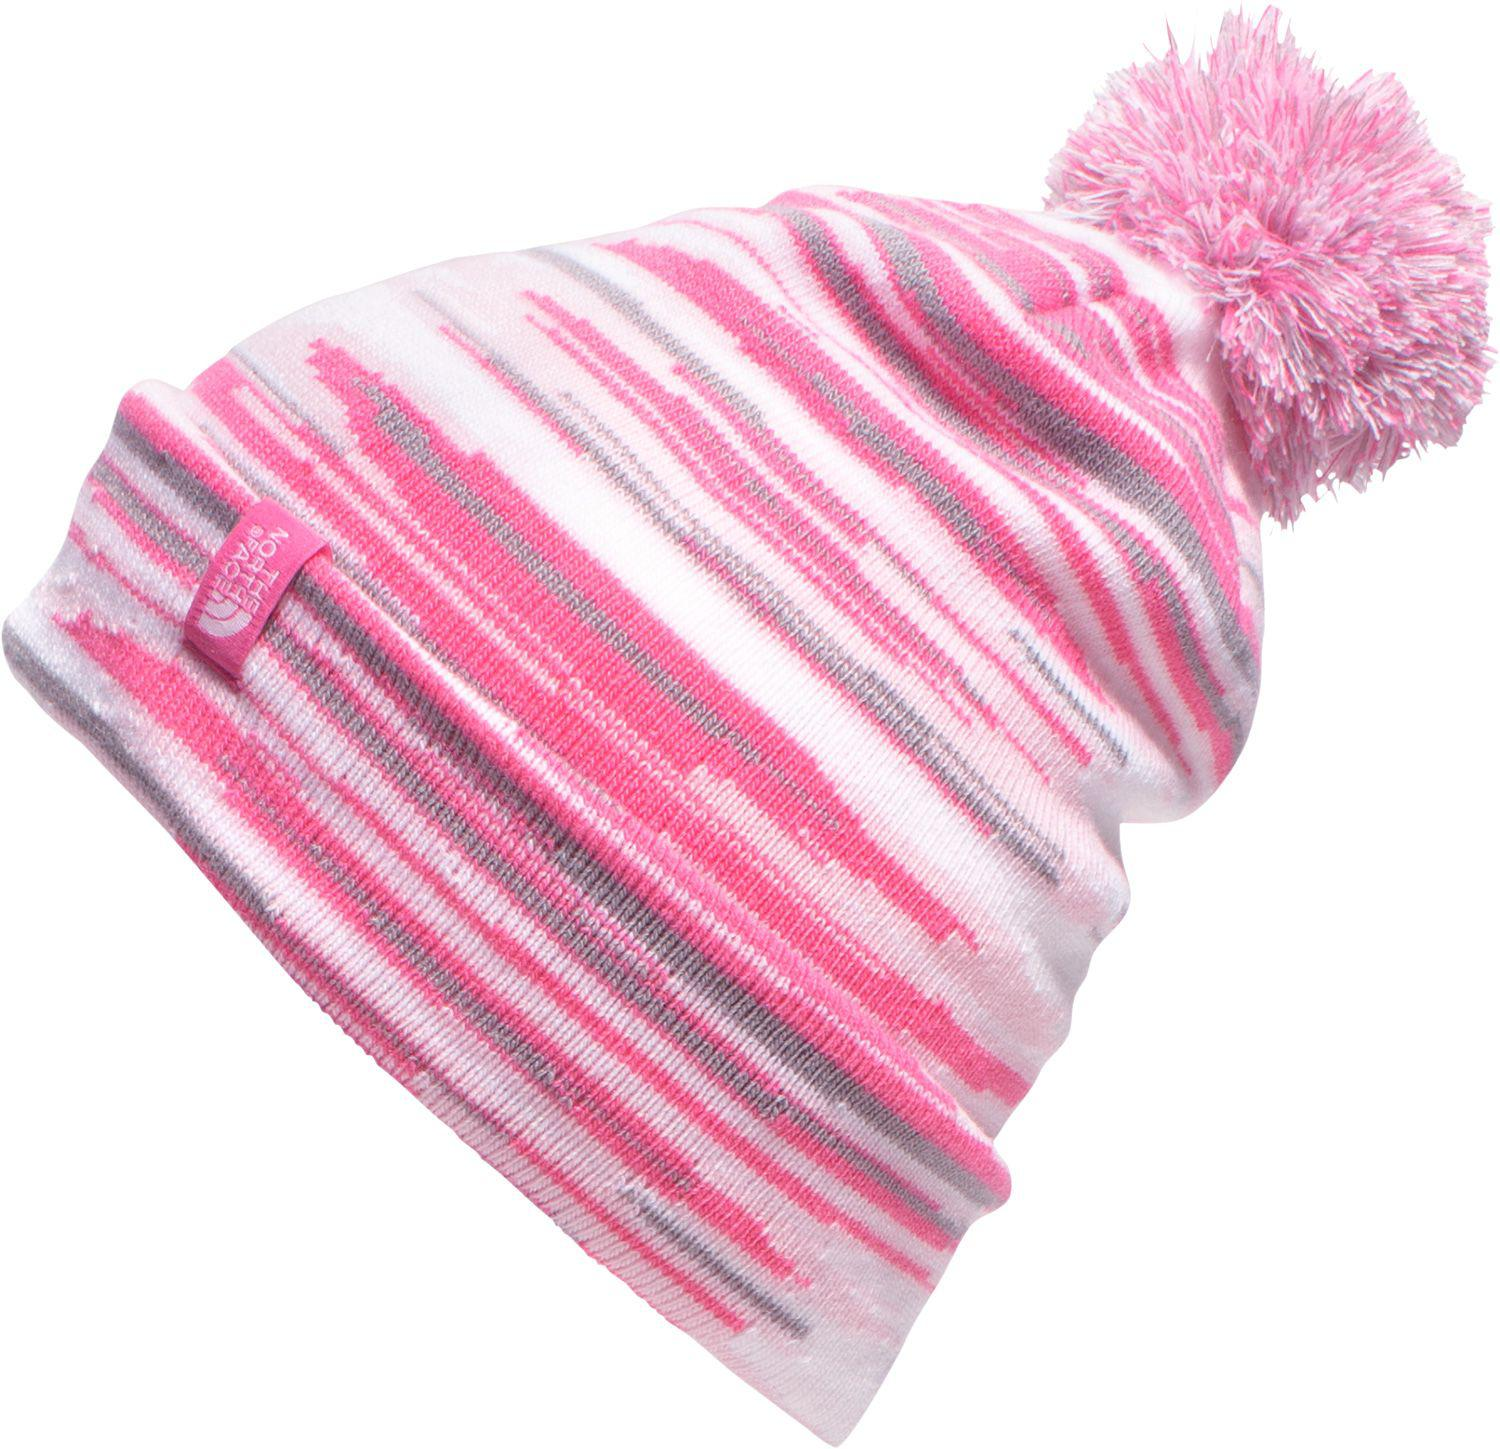 Lyst - The North Face Youth Ski Tuke Beanie in Pink 129570232dbf